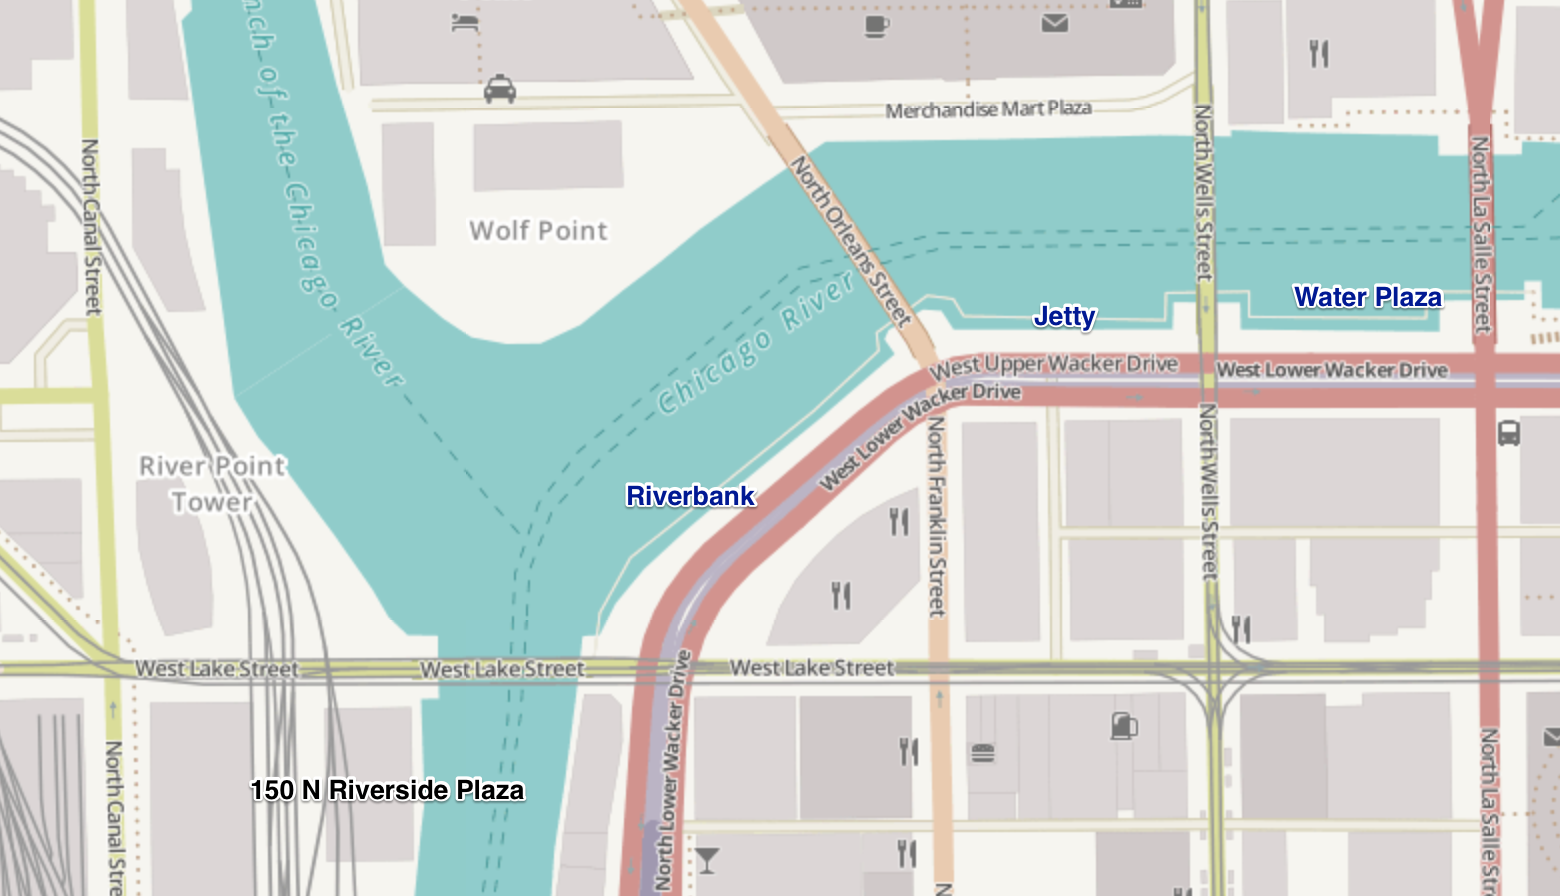 Mayor Emanuel said the new riverwalk spurred towers on Wolf Point